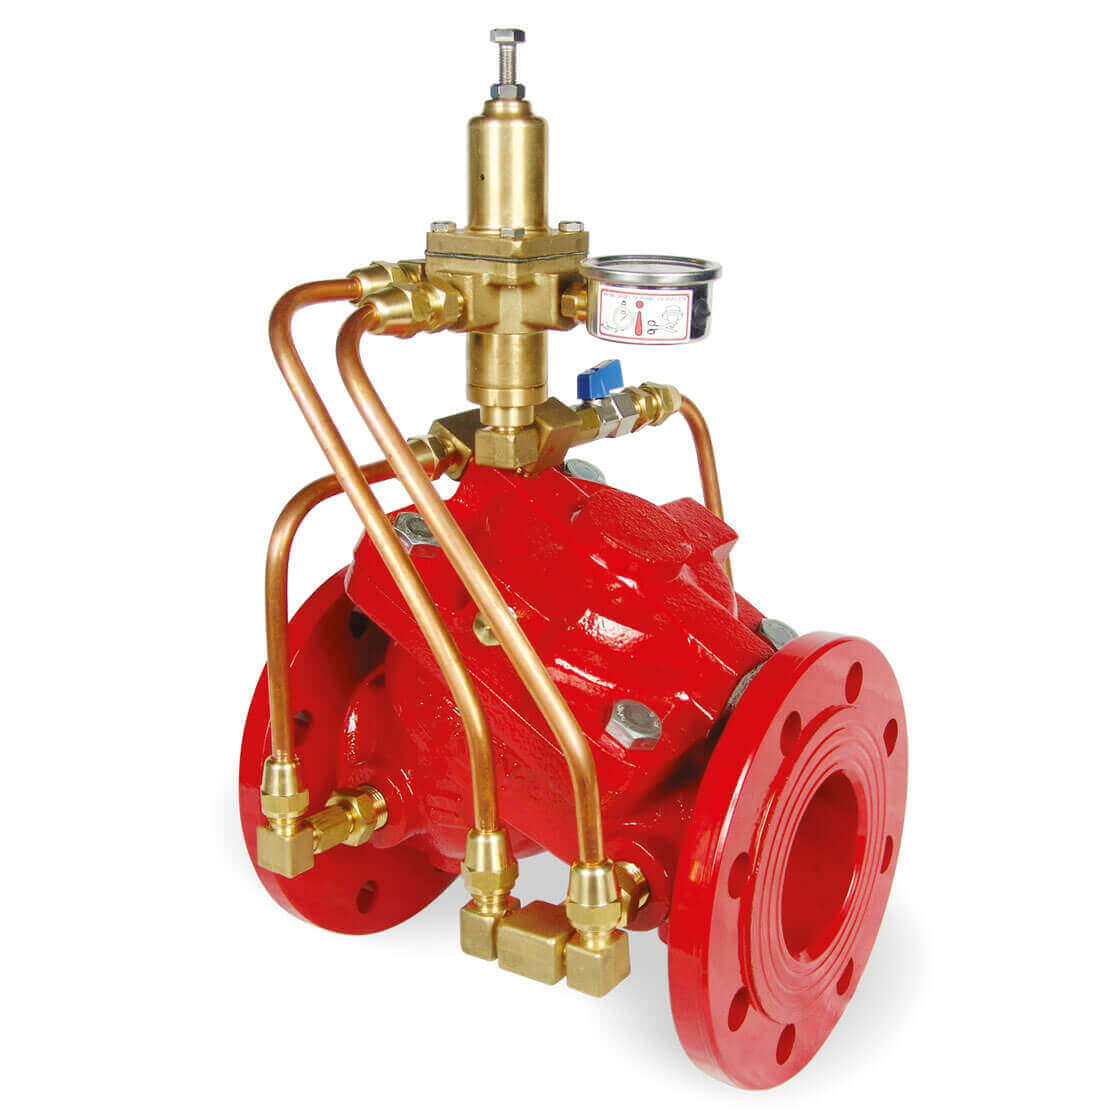 Pipe Burst Rapid Closure Control Valve